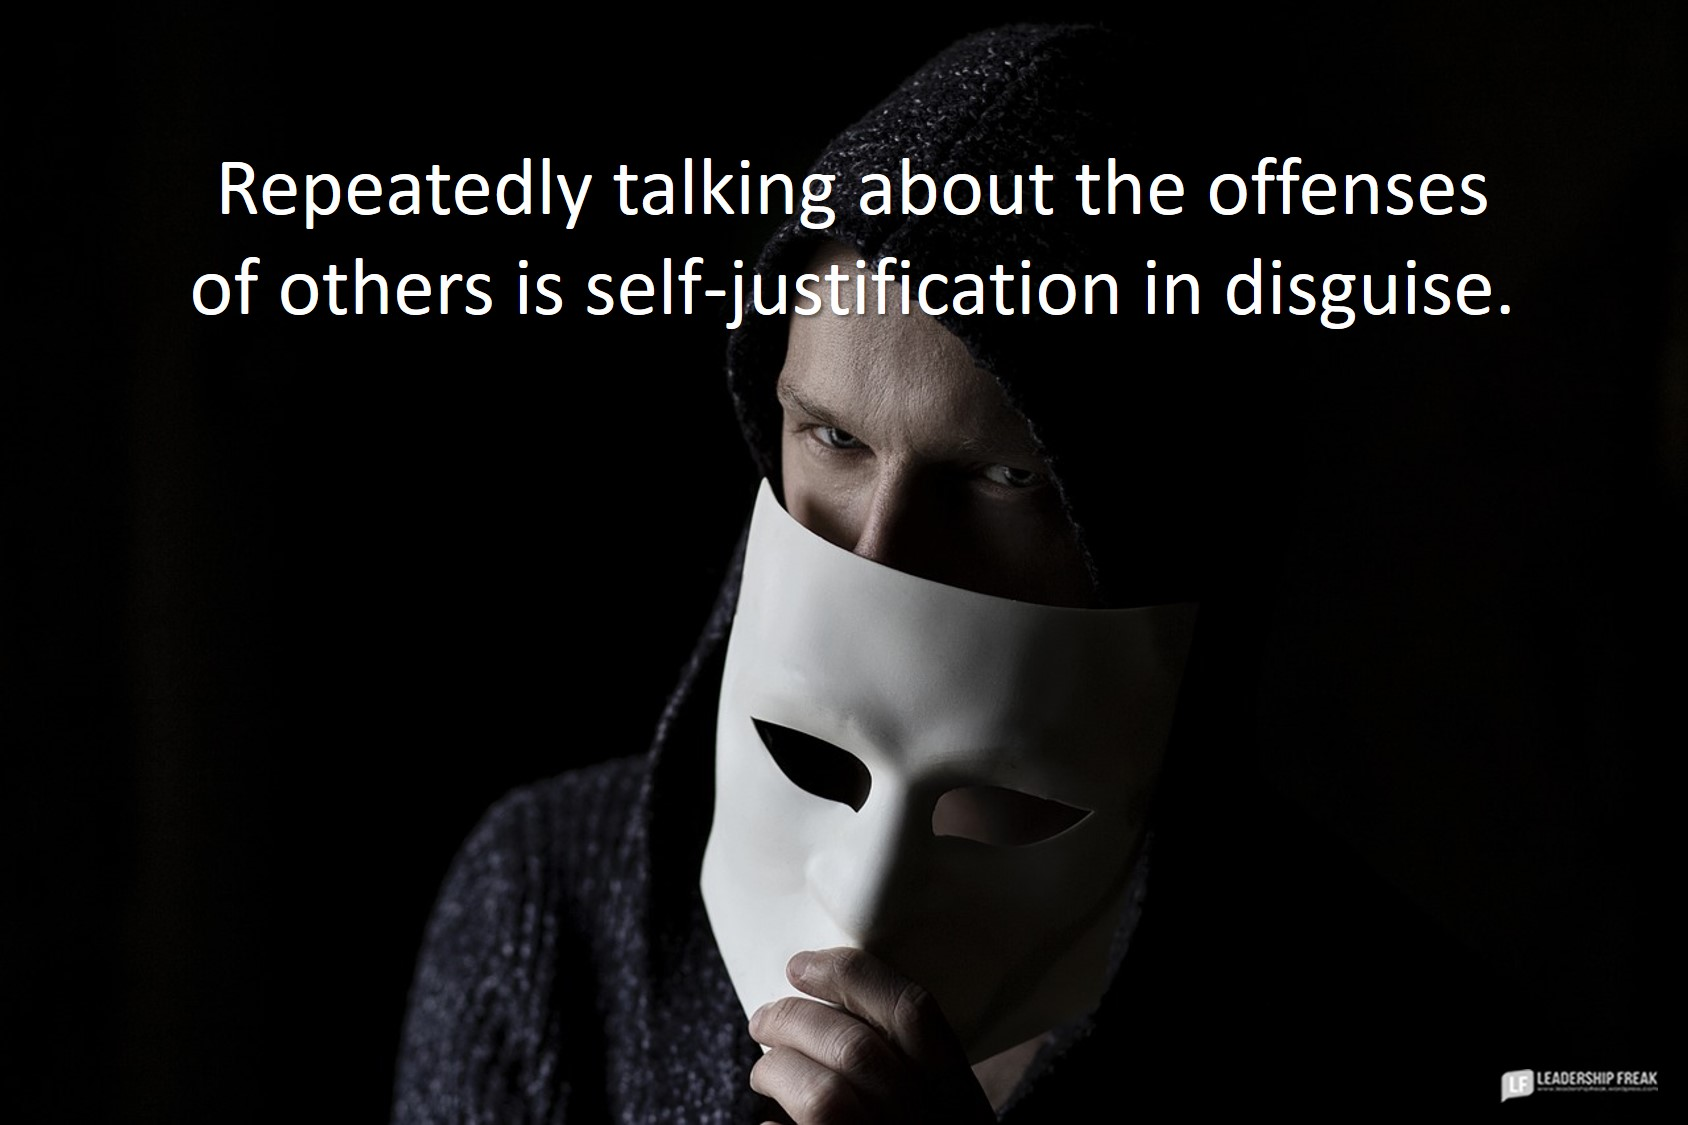 Mask  Repeatedly talking about the offenses of others is self-justification in disguise.